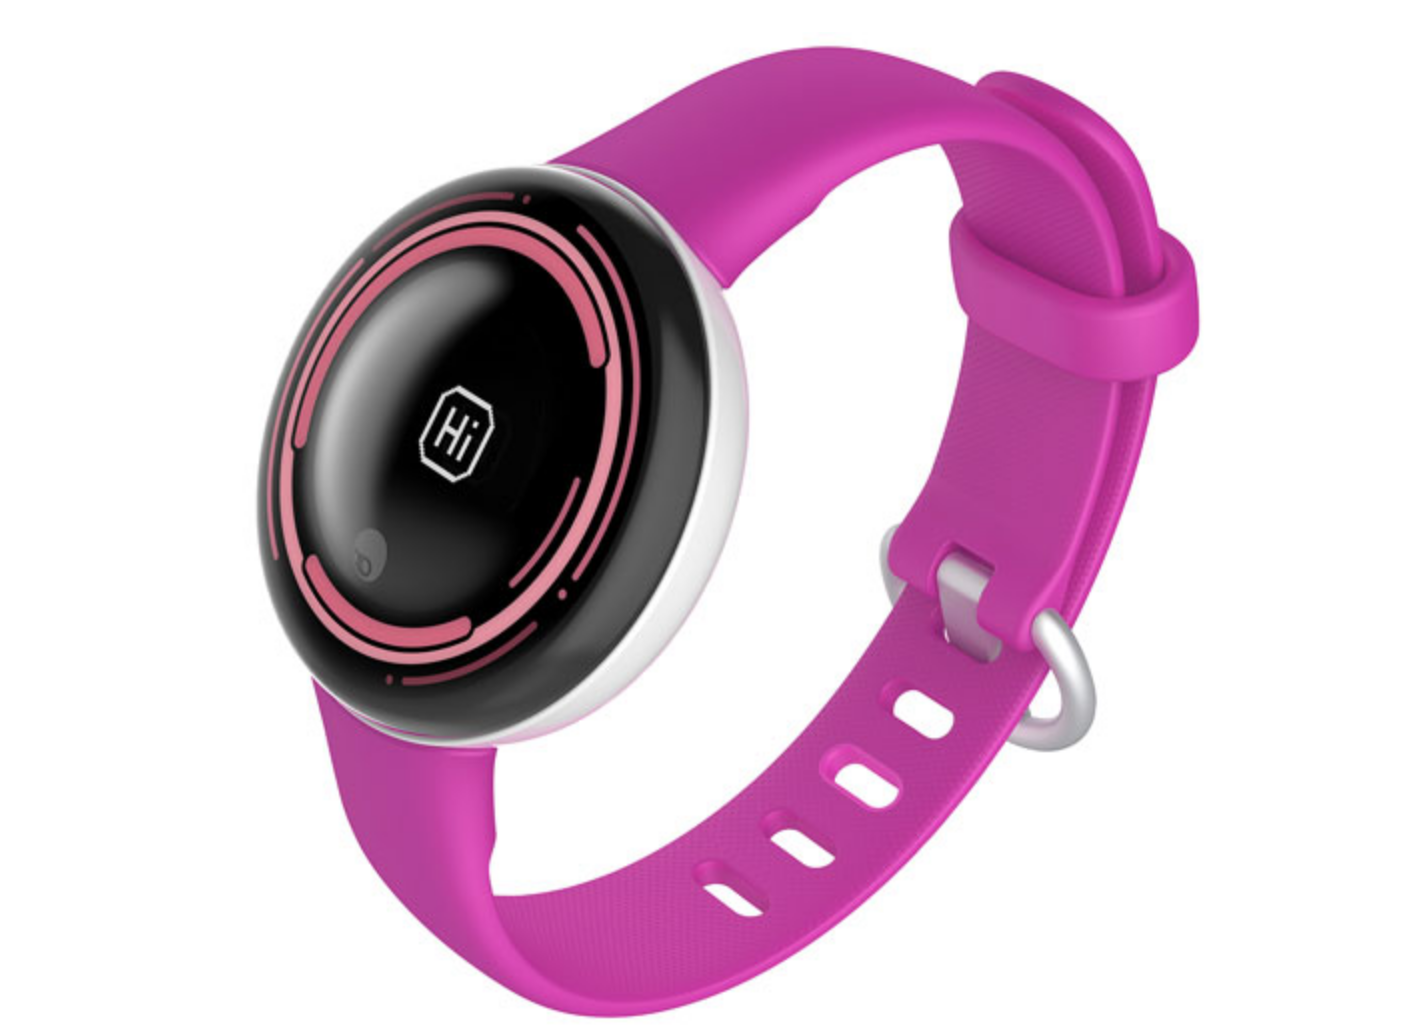 Paiband kid's fitness wearable